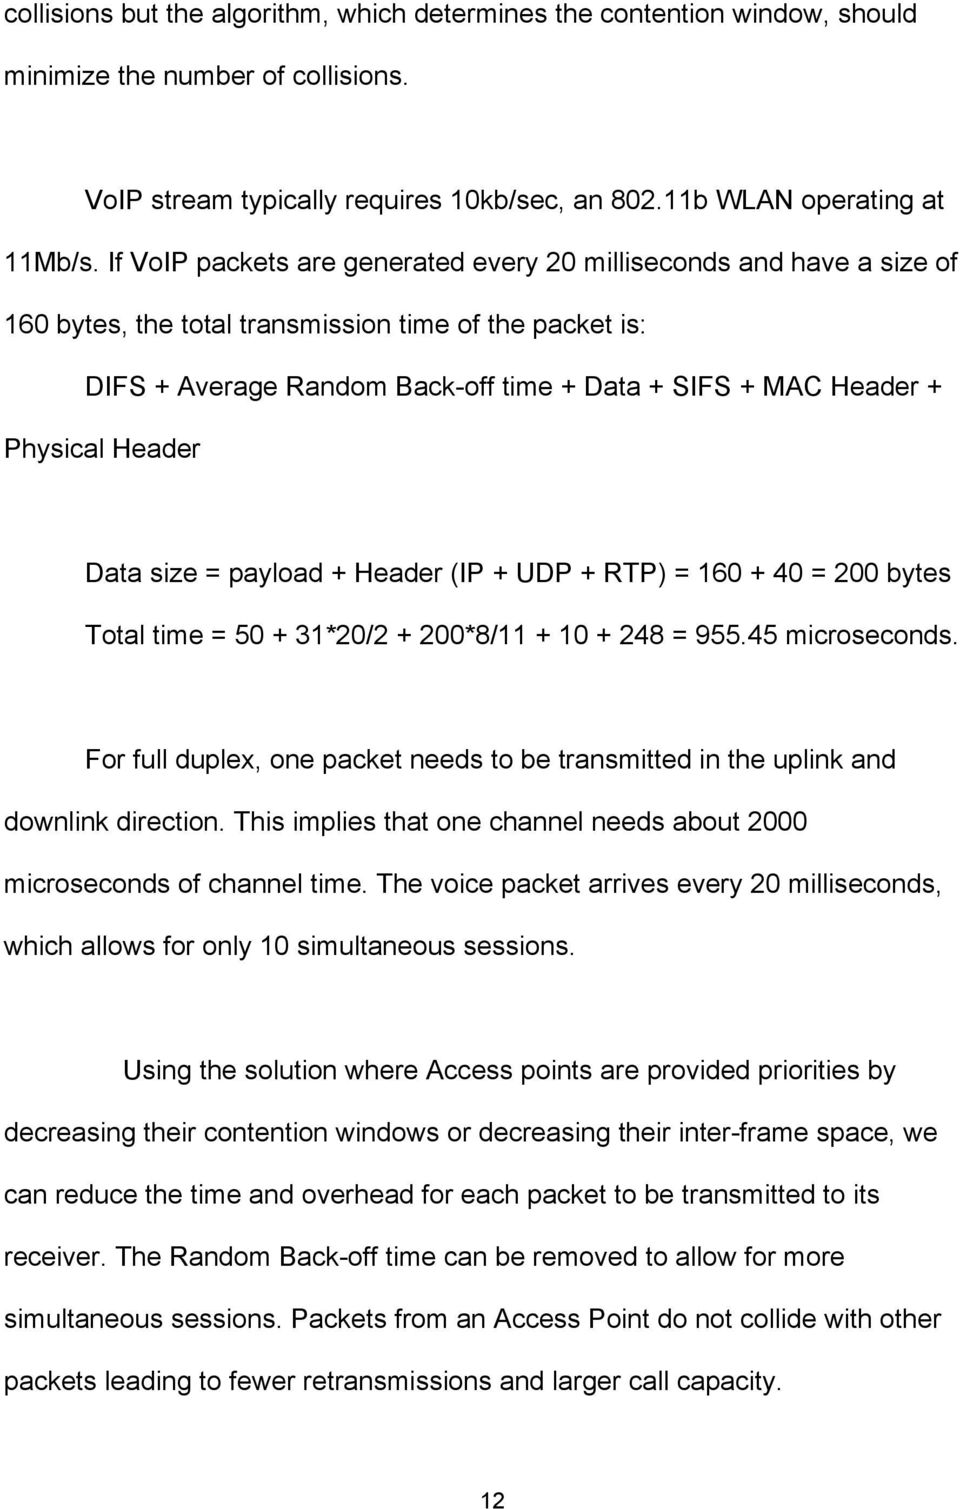 Physical Header Data size = payload + Header (IP + UDP + RTP) = 160 + 40 = 200 bytes Total time = 50 + 31*20/2 + 200*8/11 + 10 + 248 = 955.45 microseconds.